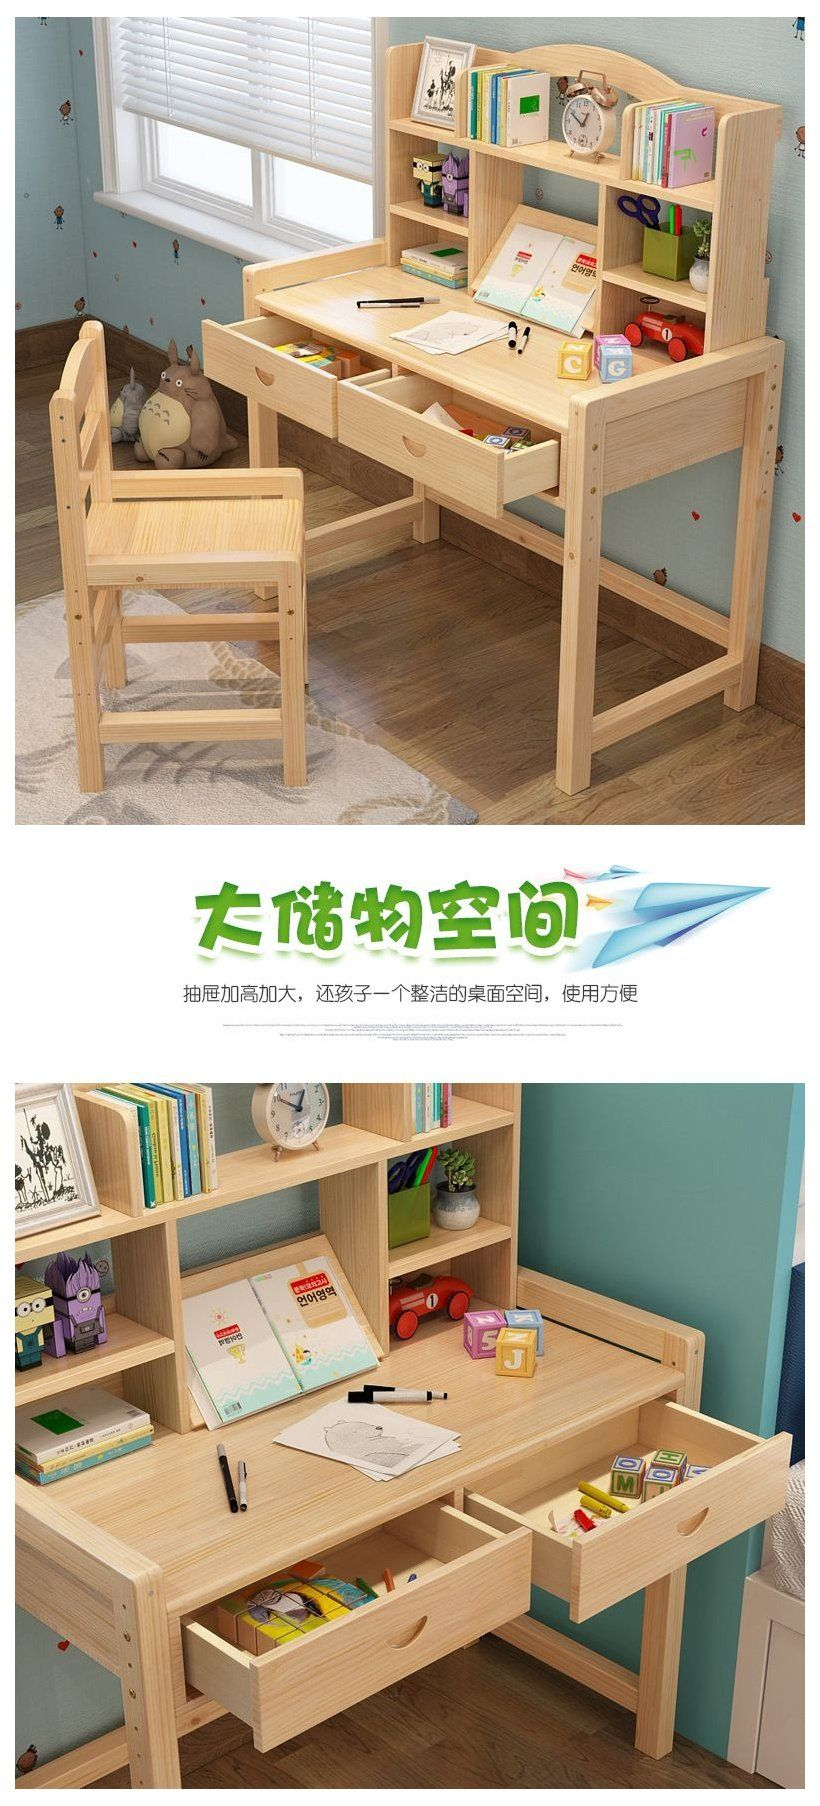 study table with chair on solid wood children s study table and chair 1 month pre order best price in malaysia children s in 2021 kids study table study table designs study table and chair solid wood children s study table and